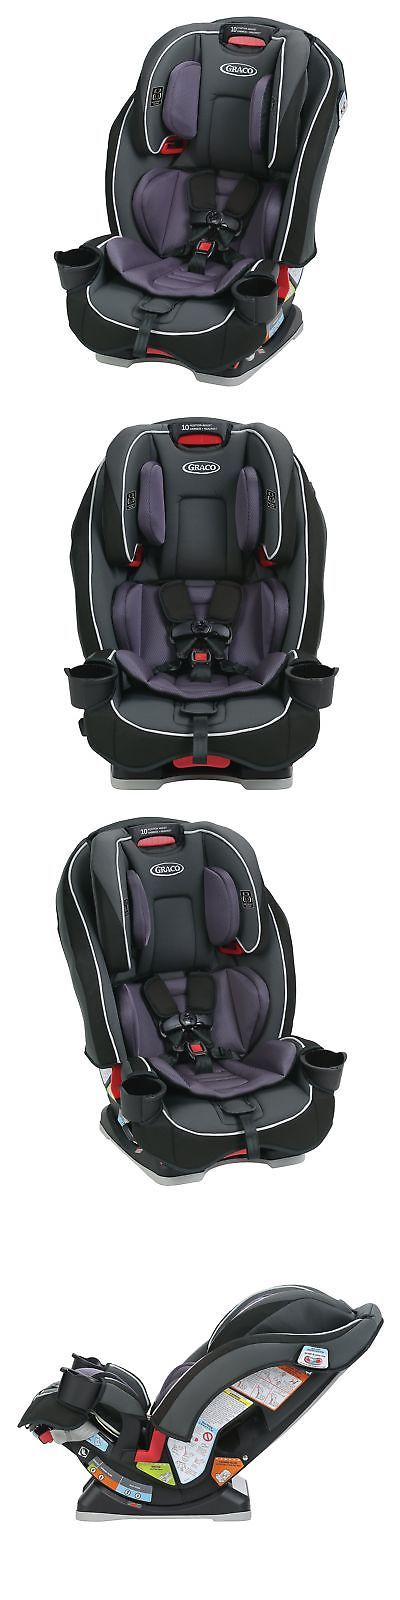 Convertible Car Seat 5 40lbs 66695 Graco Slimfit 3 In One Annabelle Anabele BUY IT NOW ONLY 18563 On EBay